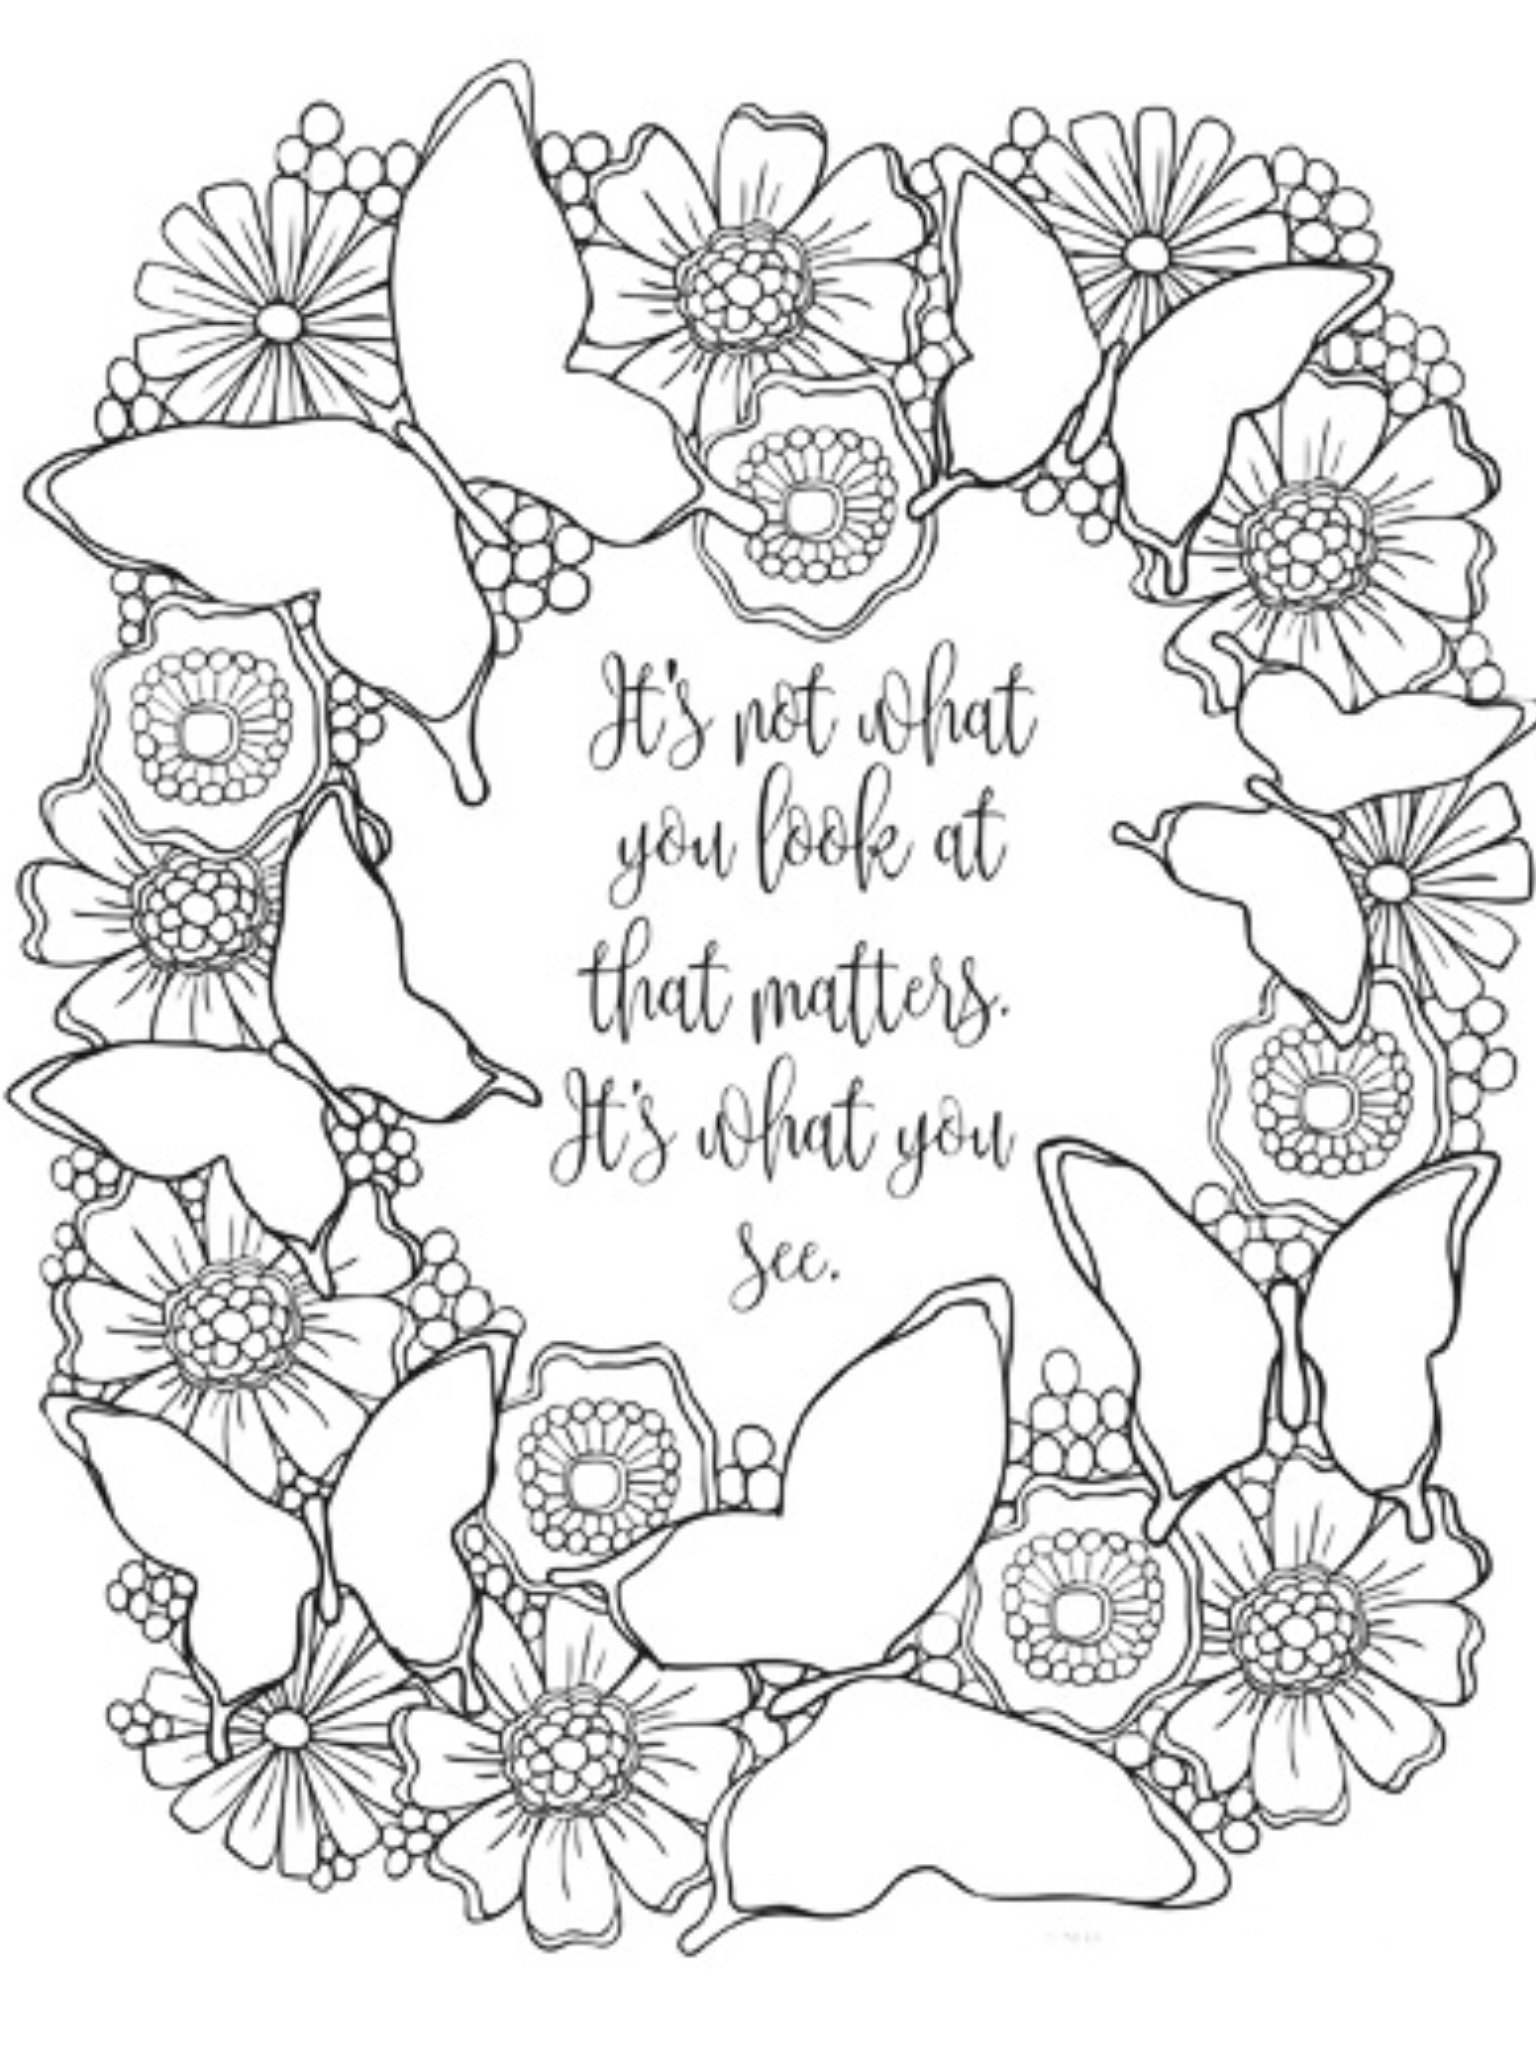 free printable coloring pages for adults and kids adult coloring pages image by tan2914 butterfly coloring coloring kids adults and for pages free printable